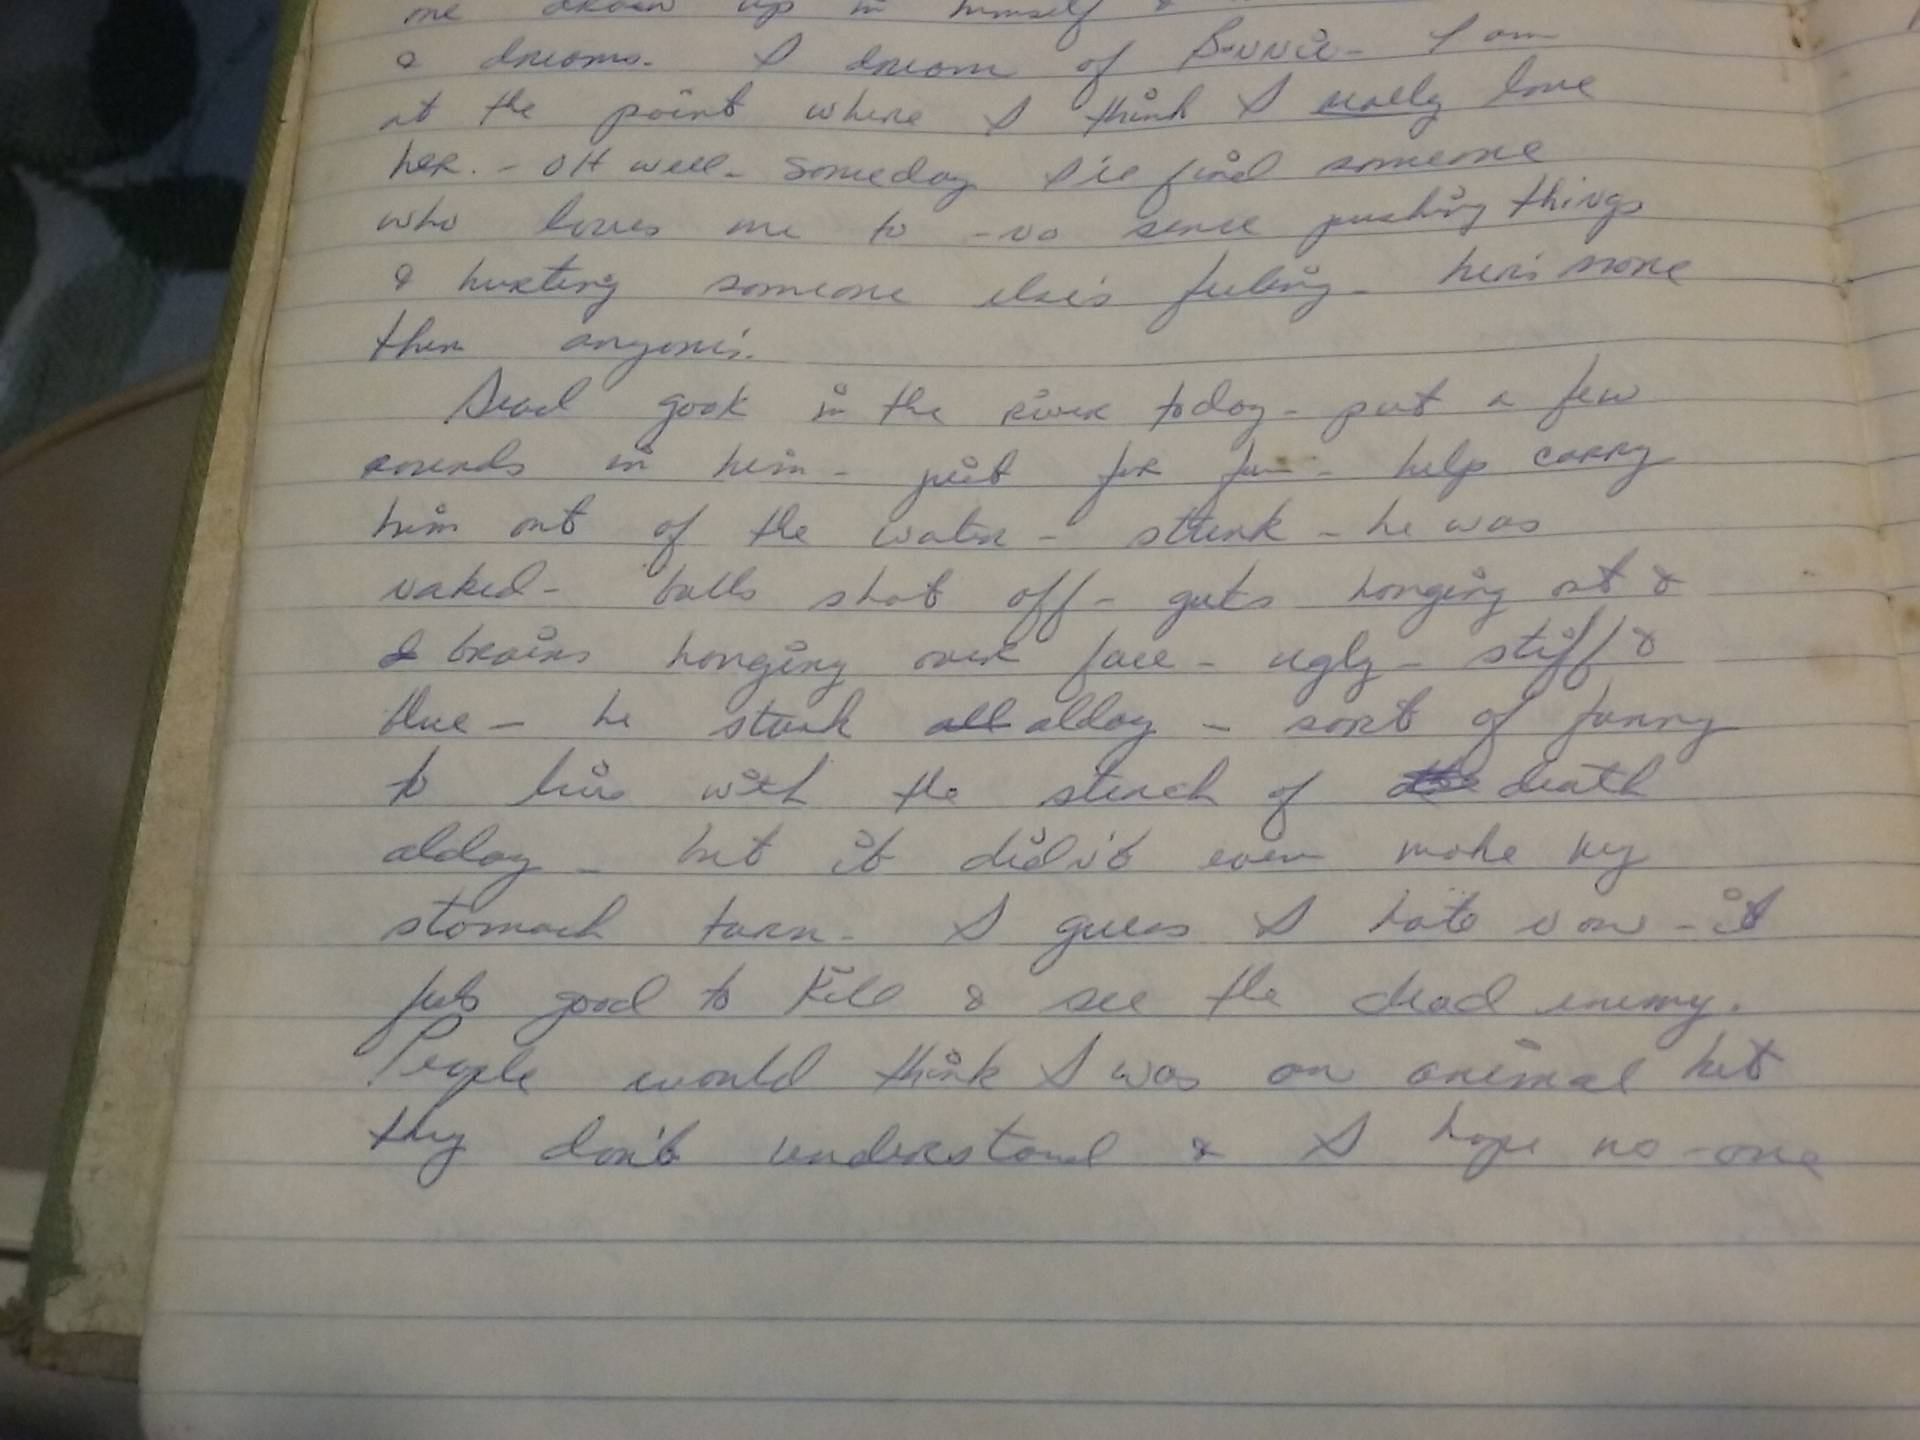 Handwritten page from a journal.